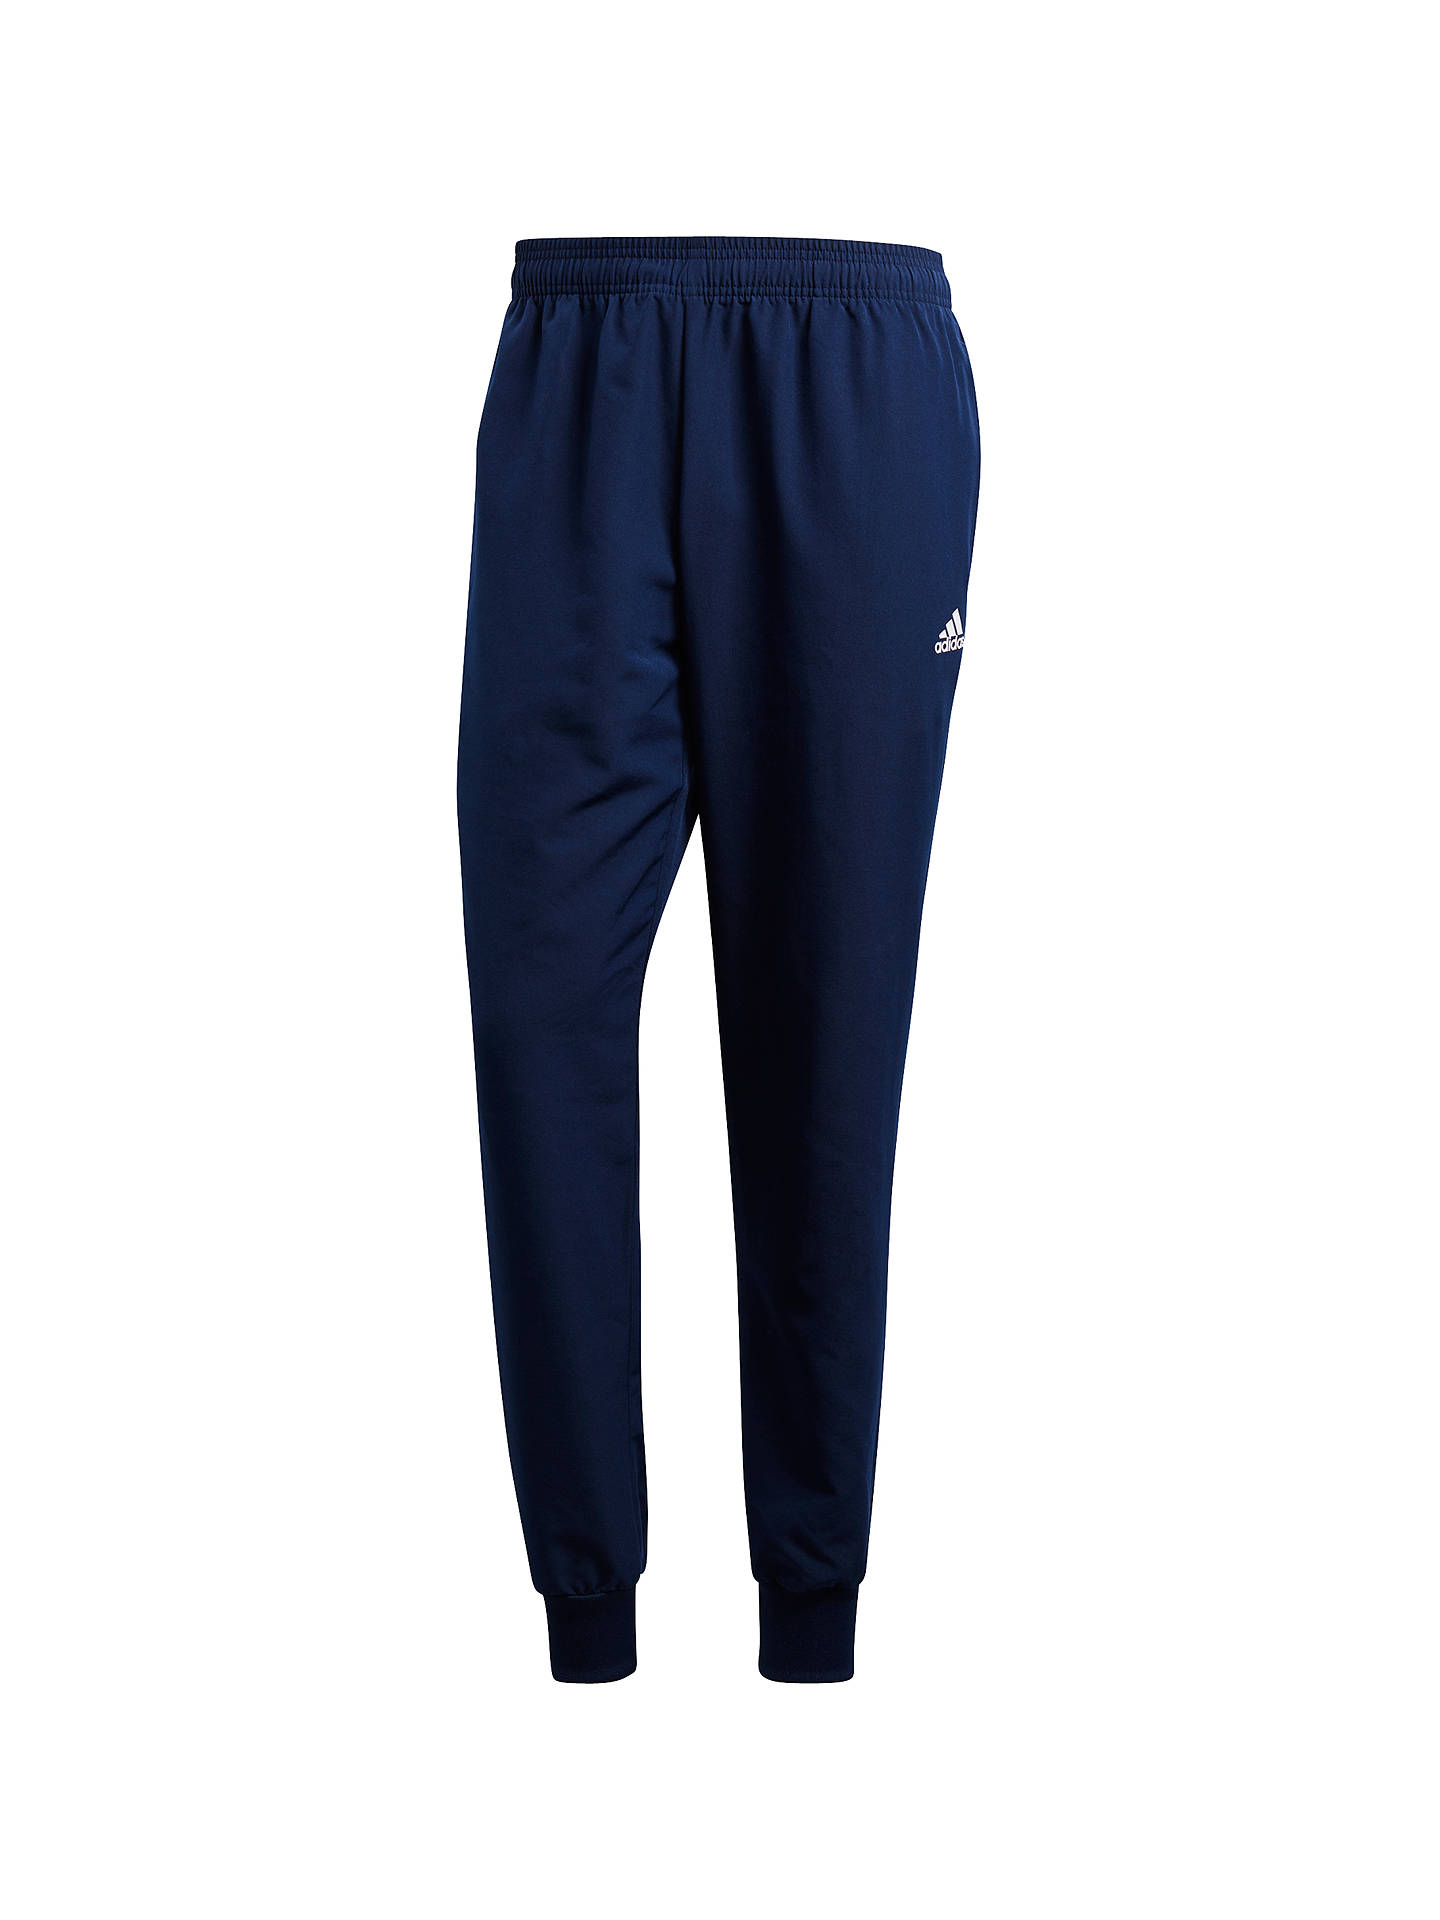 Buyadidas Essential Stanford 2.0 Tracksuit Bottoms, Navy, S Online at johnlewis.com